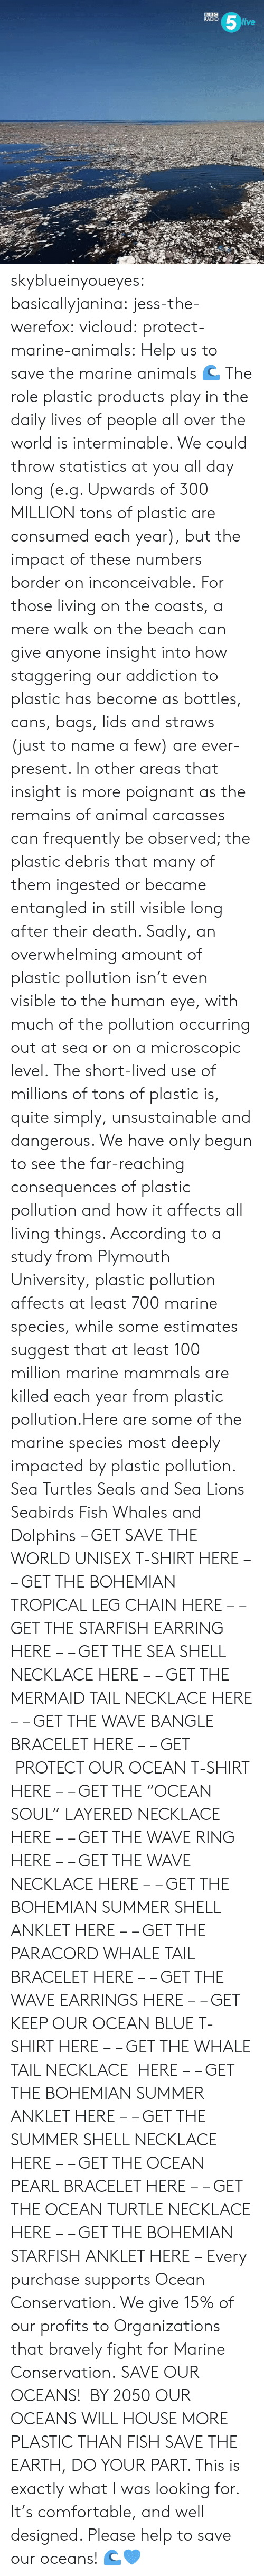 "Overwhelming Amount: RADIO  ive skyblueinyoueyes:  basicallyjanina: jess-the-werefox:   vicloud:   protect-marine-animals:  Help us to save the marine animals 🌊 The role plastic products play in the daily lives of people all over the world is interminable. We could throw statistics at you all day long (e.g. Upwards of 300 MILLION tons of plastic are consumed each year), but the impact of these numbers border on inconceivable. For those living on the coasts, a mere walk on the beach can give anyone insight into how staggering our addiction to plastic has become as bottles, cans, bags, lids and straws (just to name a few) are ever-present. In other areas that insight is more poignant as the remains of animal carcasses can frequently be observed; the plastic debris that many of them ingested or became entangled in still visible long after their death. Sadly, an overwhelming amount of plastic pollution isn't even visible to the human eye, with much of the pollution occurring out at sea or on a microscopic level. The short-lived use of millions of tons of plastic is, quite simply, unsustainable and dangerous. We have only begun to see the far-reaching consequences of plastic pollution and how it affects all living things. According to a study from Plymouth University, plastic pollution affects at least 700 marine species, while some estimates suggest that at least 100 million marine mammals are killed each year from plastic pollution.Here are some of the marine species most deeply impacted by plastic pollution. Sea Turtles Seals and Sea Lions Seabirds Fish Whales and Dolphins – GET SAVE THE WORLD UNISEX T-SHIRT HERE – – GET THE BOHEMIAN TROPICAL LEG CHAIN HERE – – GET THE STARFISH EARRING HERE – – GET THE SEA SHELL NECKLACE HERE – – GET THE MERMAID TAIL NECKLACE HERE – – GET THE WAVE BANGLE BRACELET HERE – – GET  PROTECT OUR OCEAN T-SHIRT HERE – – GET THE ""OCEAN SOUL"" LAYERED NECKLACE HERE – – GET THE WAVE RING HERE – – GET THE WAVE NECKLACE HERE – – GET THE BOHEMIAN SUMMER SHELL ANKLET HERE – – GET THE PARACORD WHALE TAIL BRACELET HERE – – GET THE WAVE EARRINGS HERE – – GET KEEP OUR OCEAN BLUE T-SHIRT HERE – – GET THE WHALE TAIL NECKLACE  HERE – – GET THE BOHEMIAN SUMMER ANKLET HERE – – GET THE SUMMER SHELL NECKLACE HERE – – GET THE OCEAN PEARL BRACELET HERE – – GET THE OCEAN TURTLE NECKLACE HERE – – GET THE BOHEMIAN STARFISH ANKLET HERE – Every purchase supports Ocean Conservation. We give 15% of our profits to Organizations that bravely fight for Marine Conservation.  SAVE OUR OCEANS!    BY 2050 OUR OCEANS WILL HOUSE MORE PLASTIC THAN FISH   SAVE THE EARTH, DO YOUR PART.   This is exactly what I was looking for. It's comfortable, and well designed. Please help to save our oceans! 🌊💙"